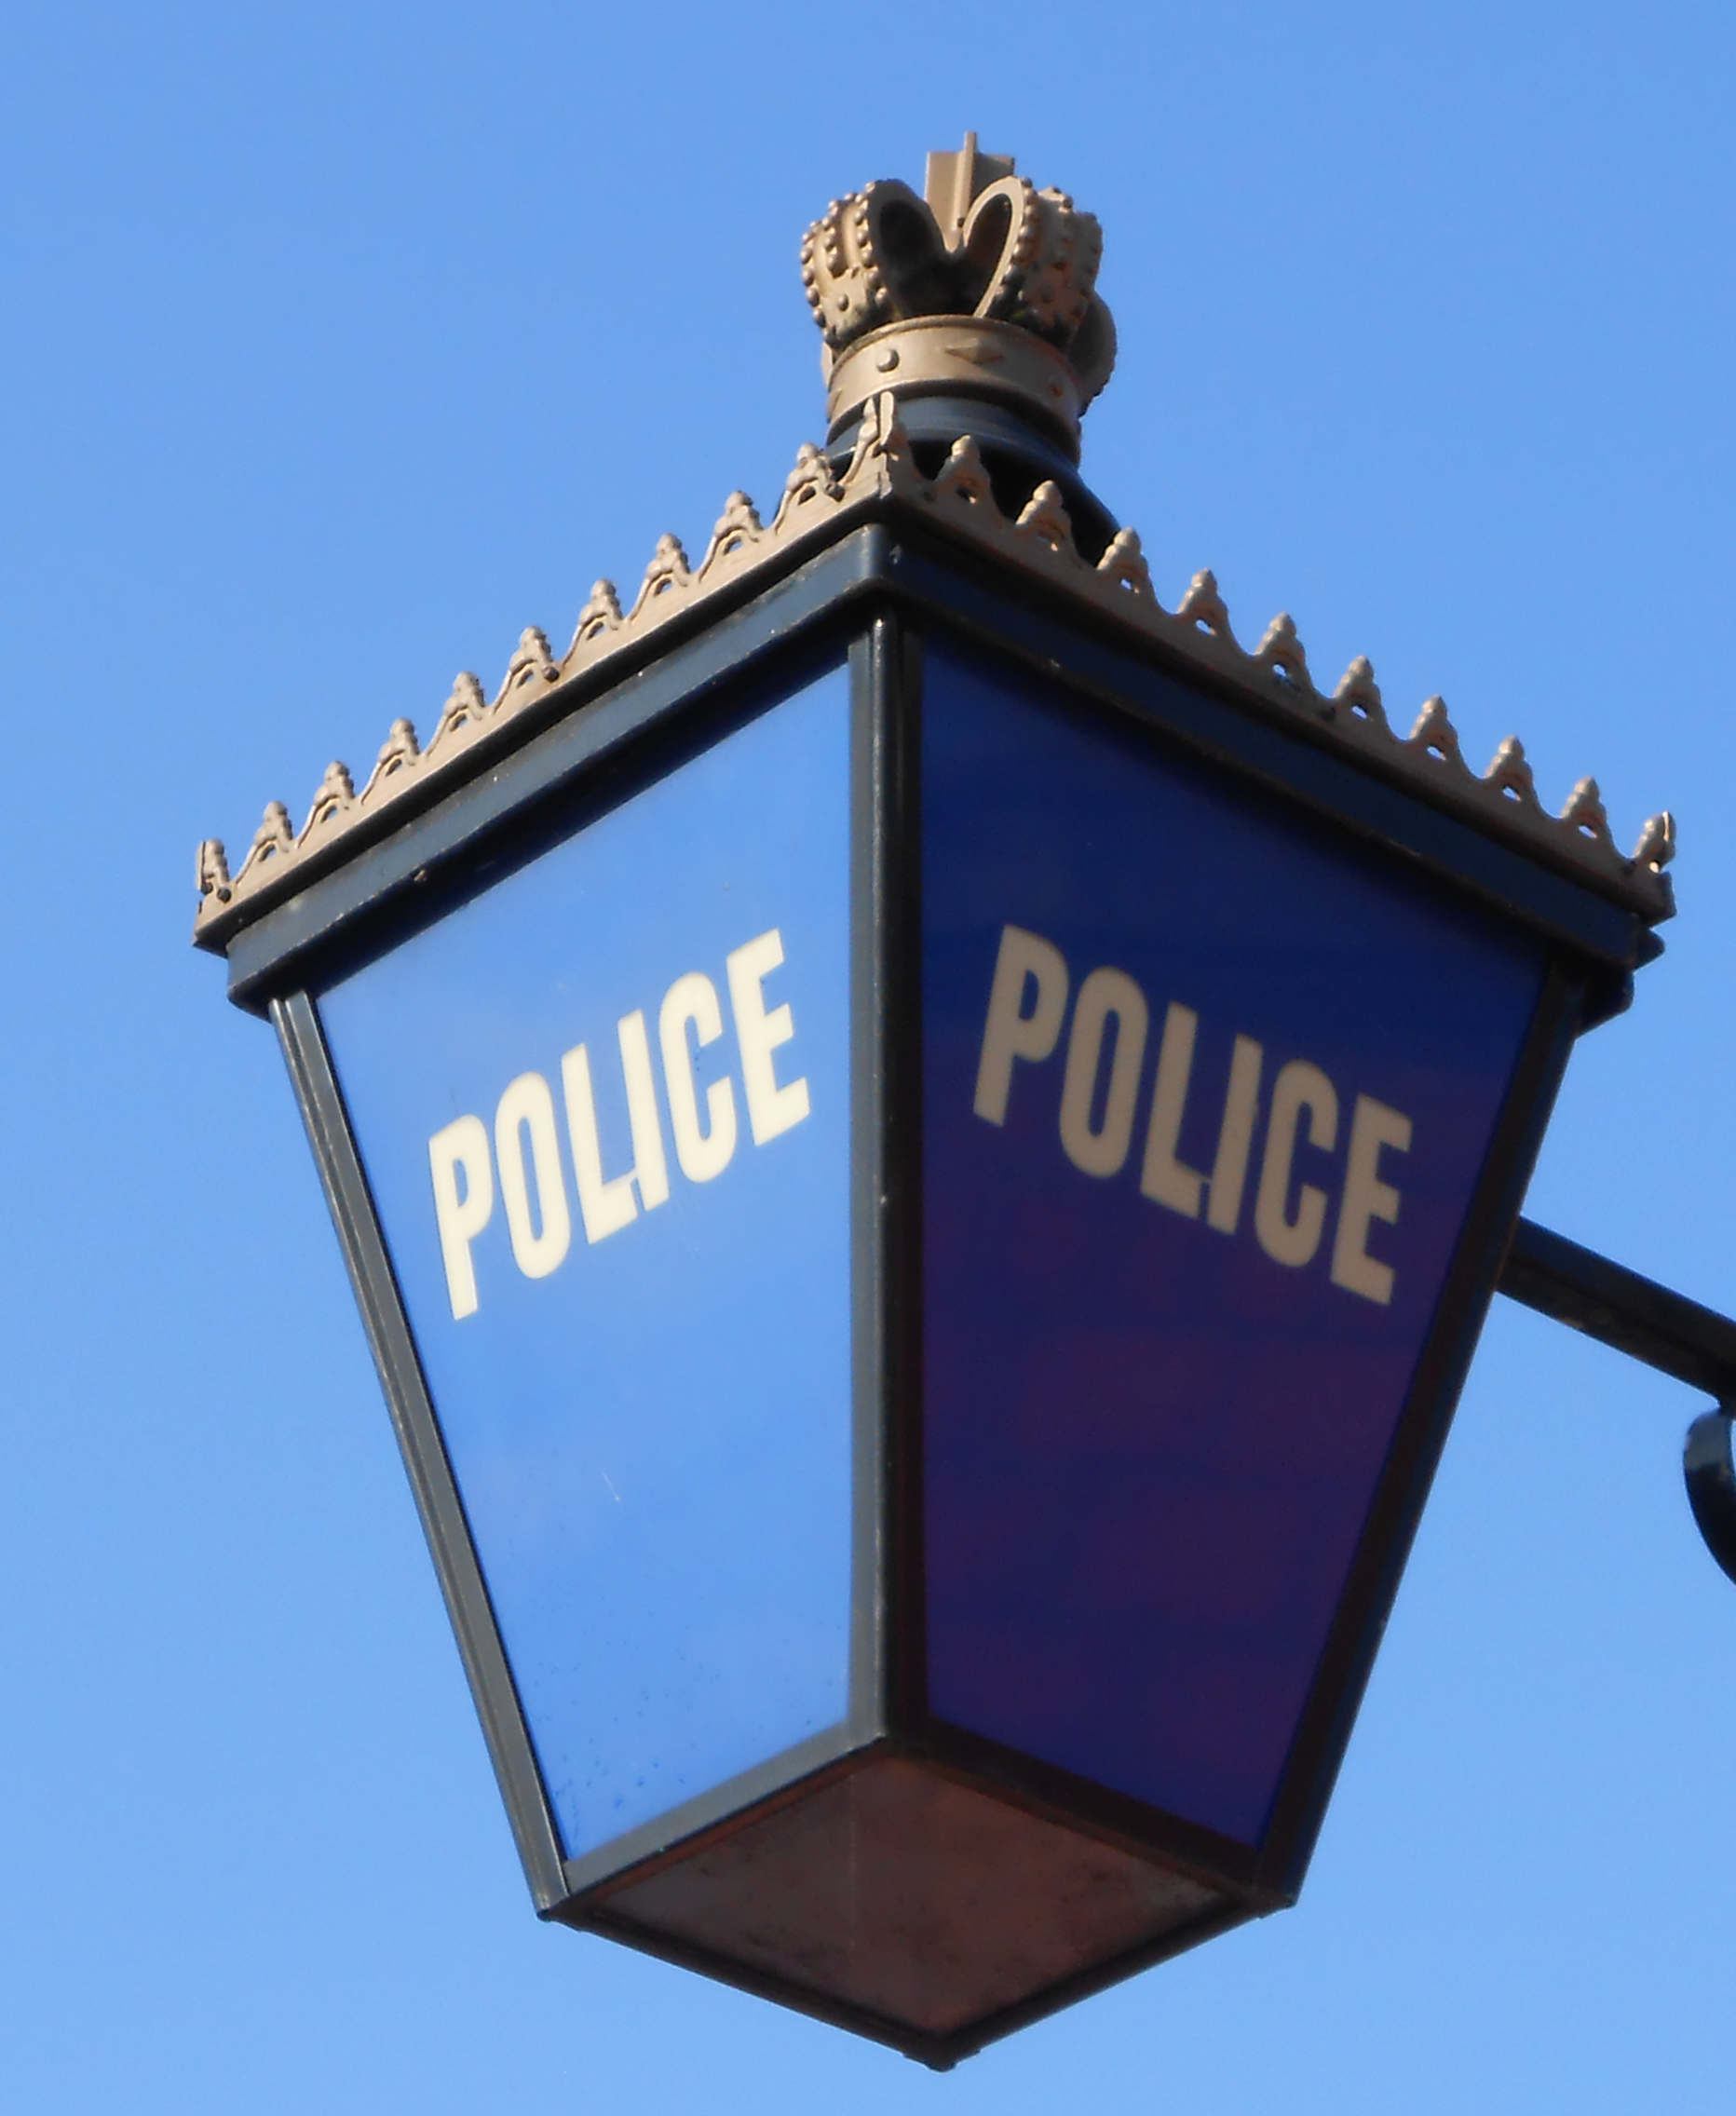 FileBlue Lamp At Well Lane Police Station Birkenhead